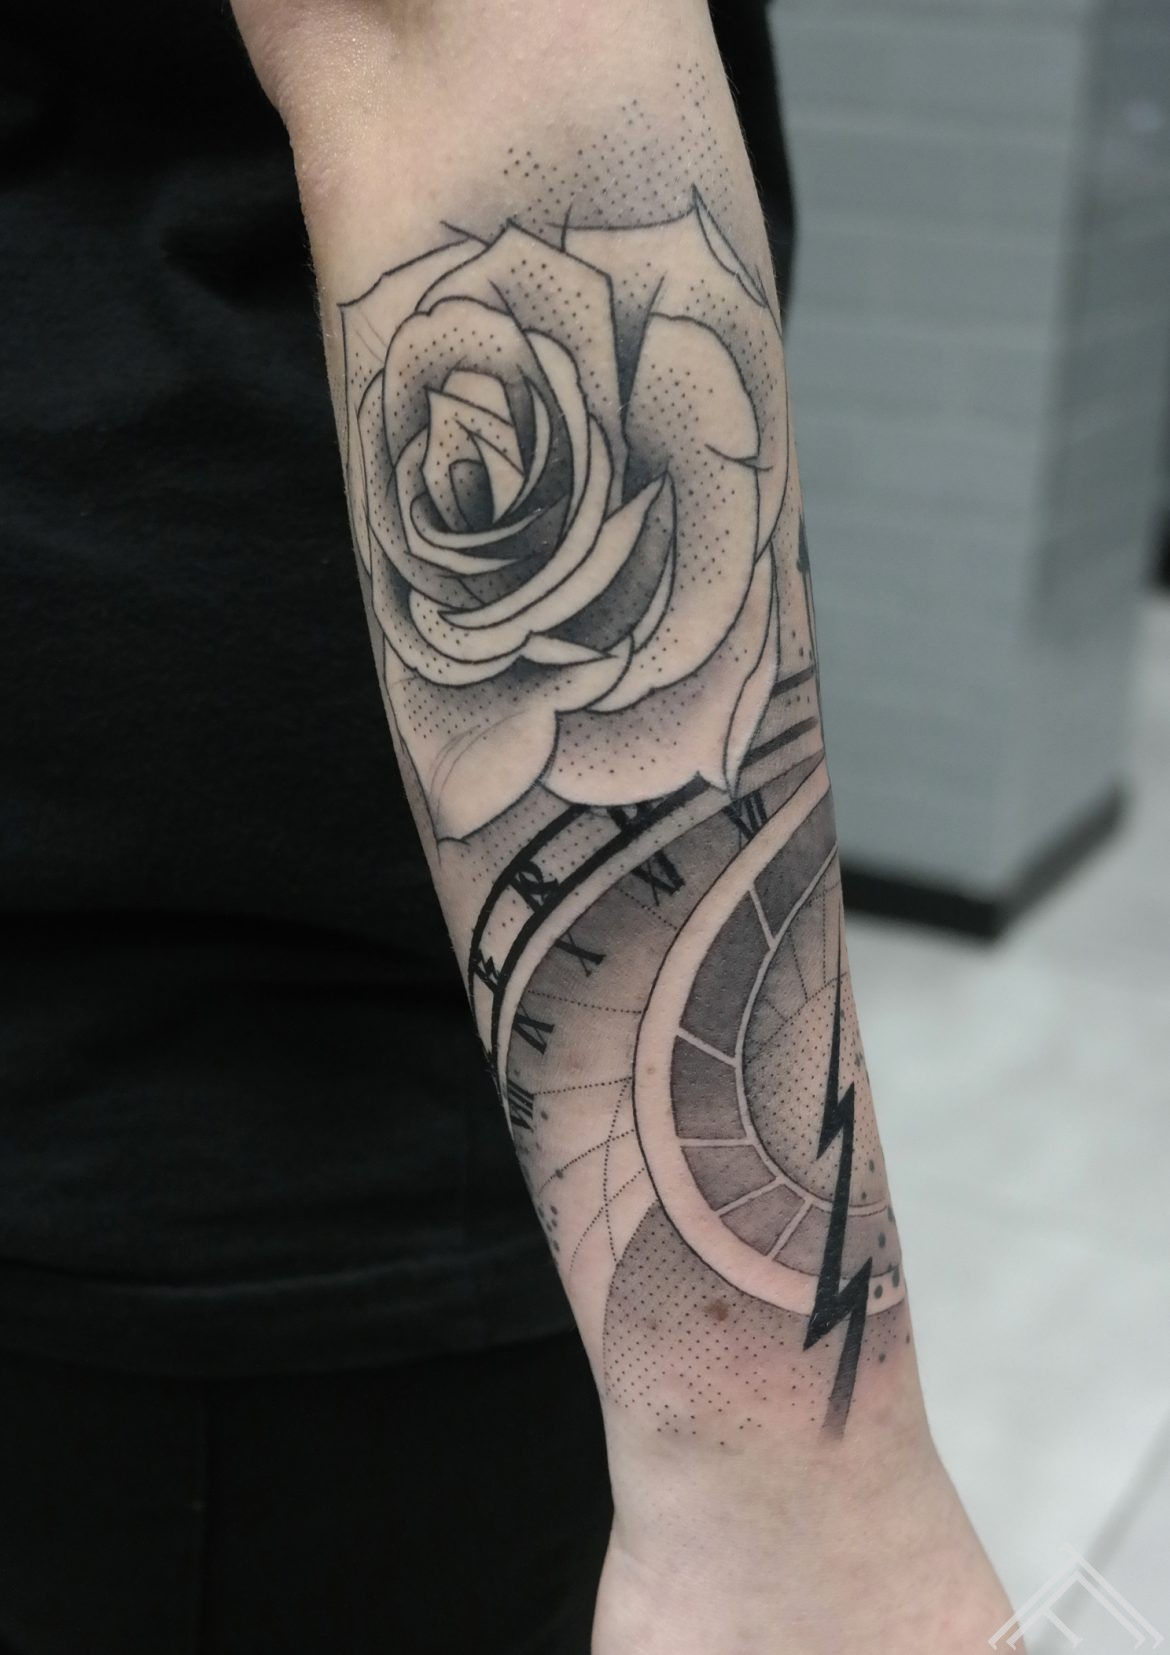 rose-roze-tetovejums-tattoo-tattoofrequency-riga-janissvars